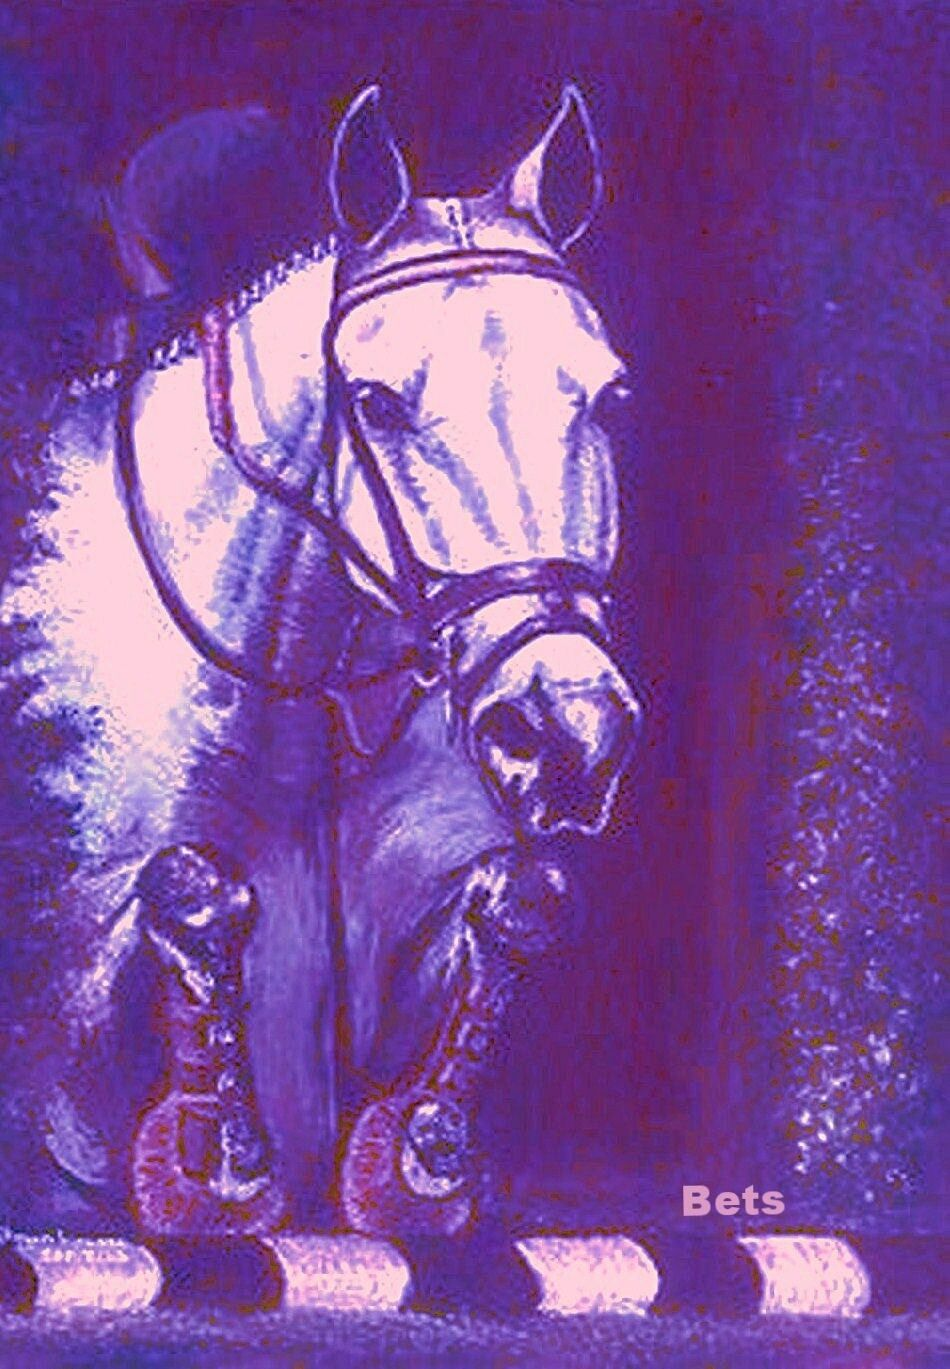 HORSE PRINT Giclee JUMPER  Art NO FAULTS artist BETS  6 COLORS print size 14 X 19  discounts and more